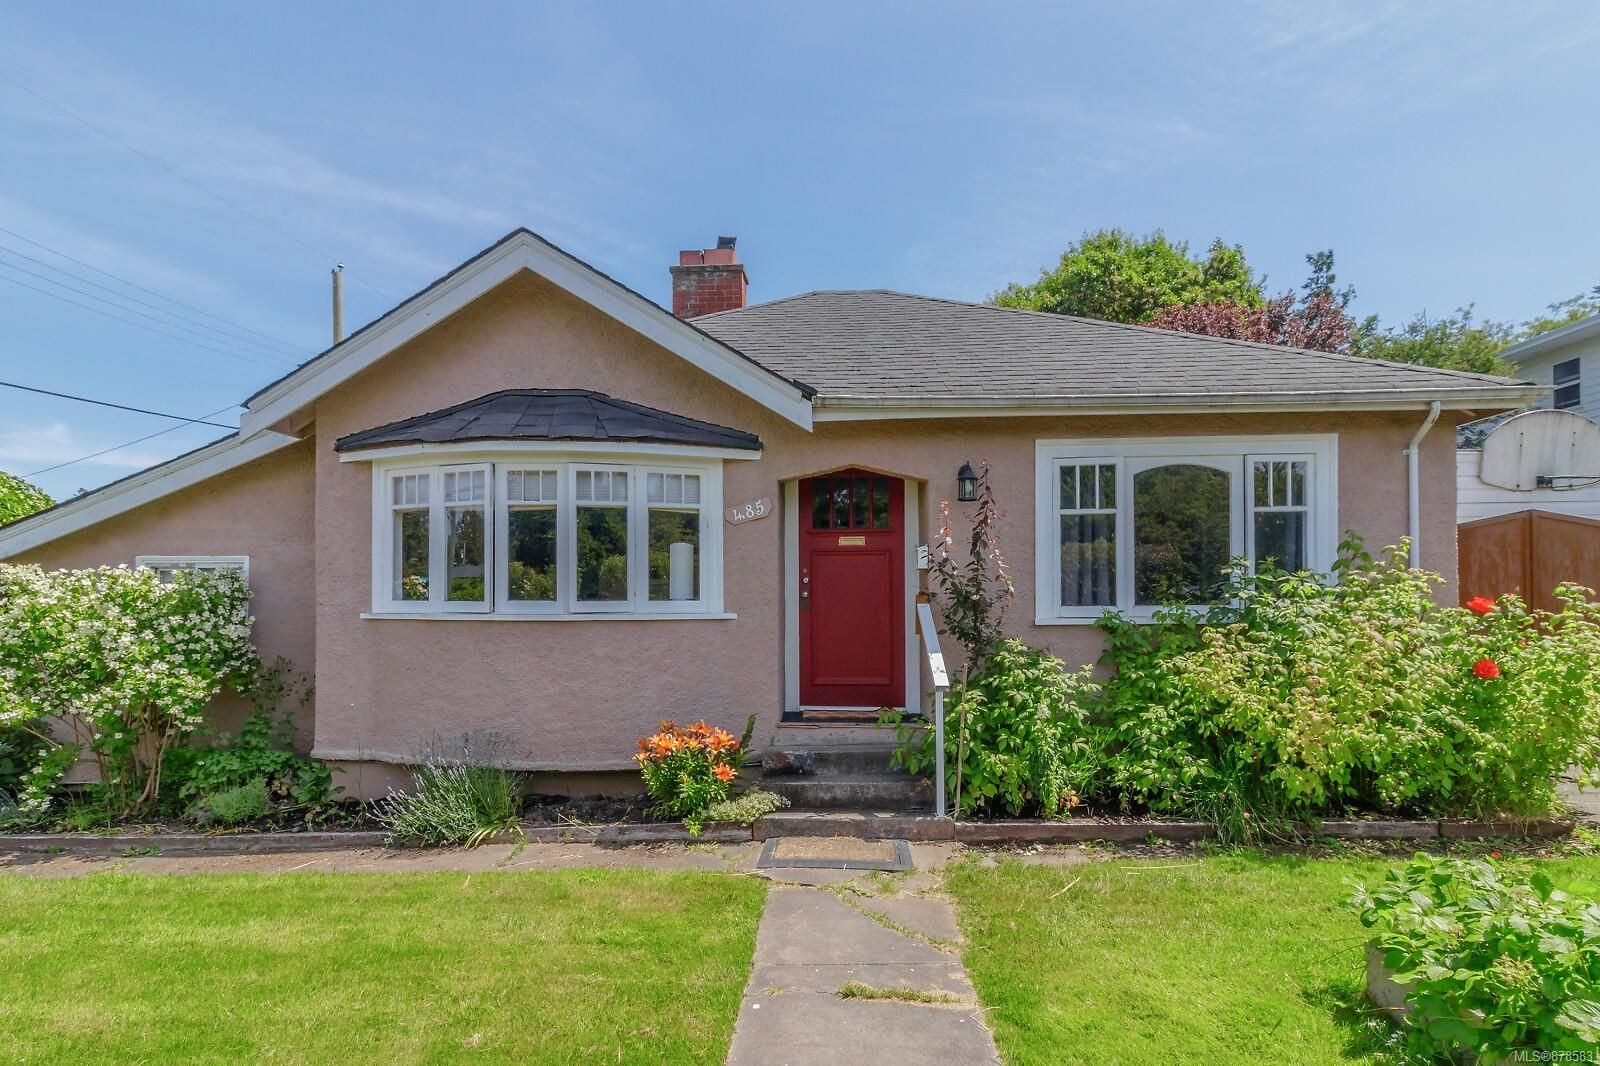 Main Photo: 485 Marigold Rd in : SW Marigold House for sale (Saanich West)  : MLS®# 878583